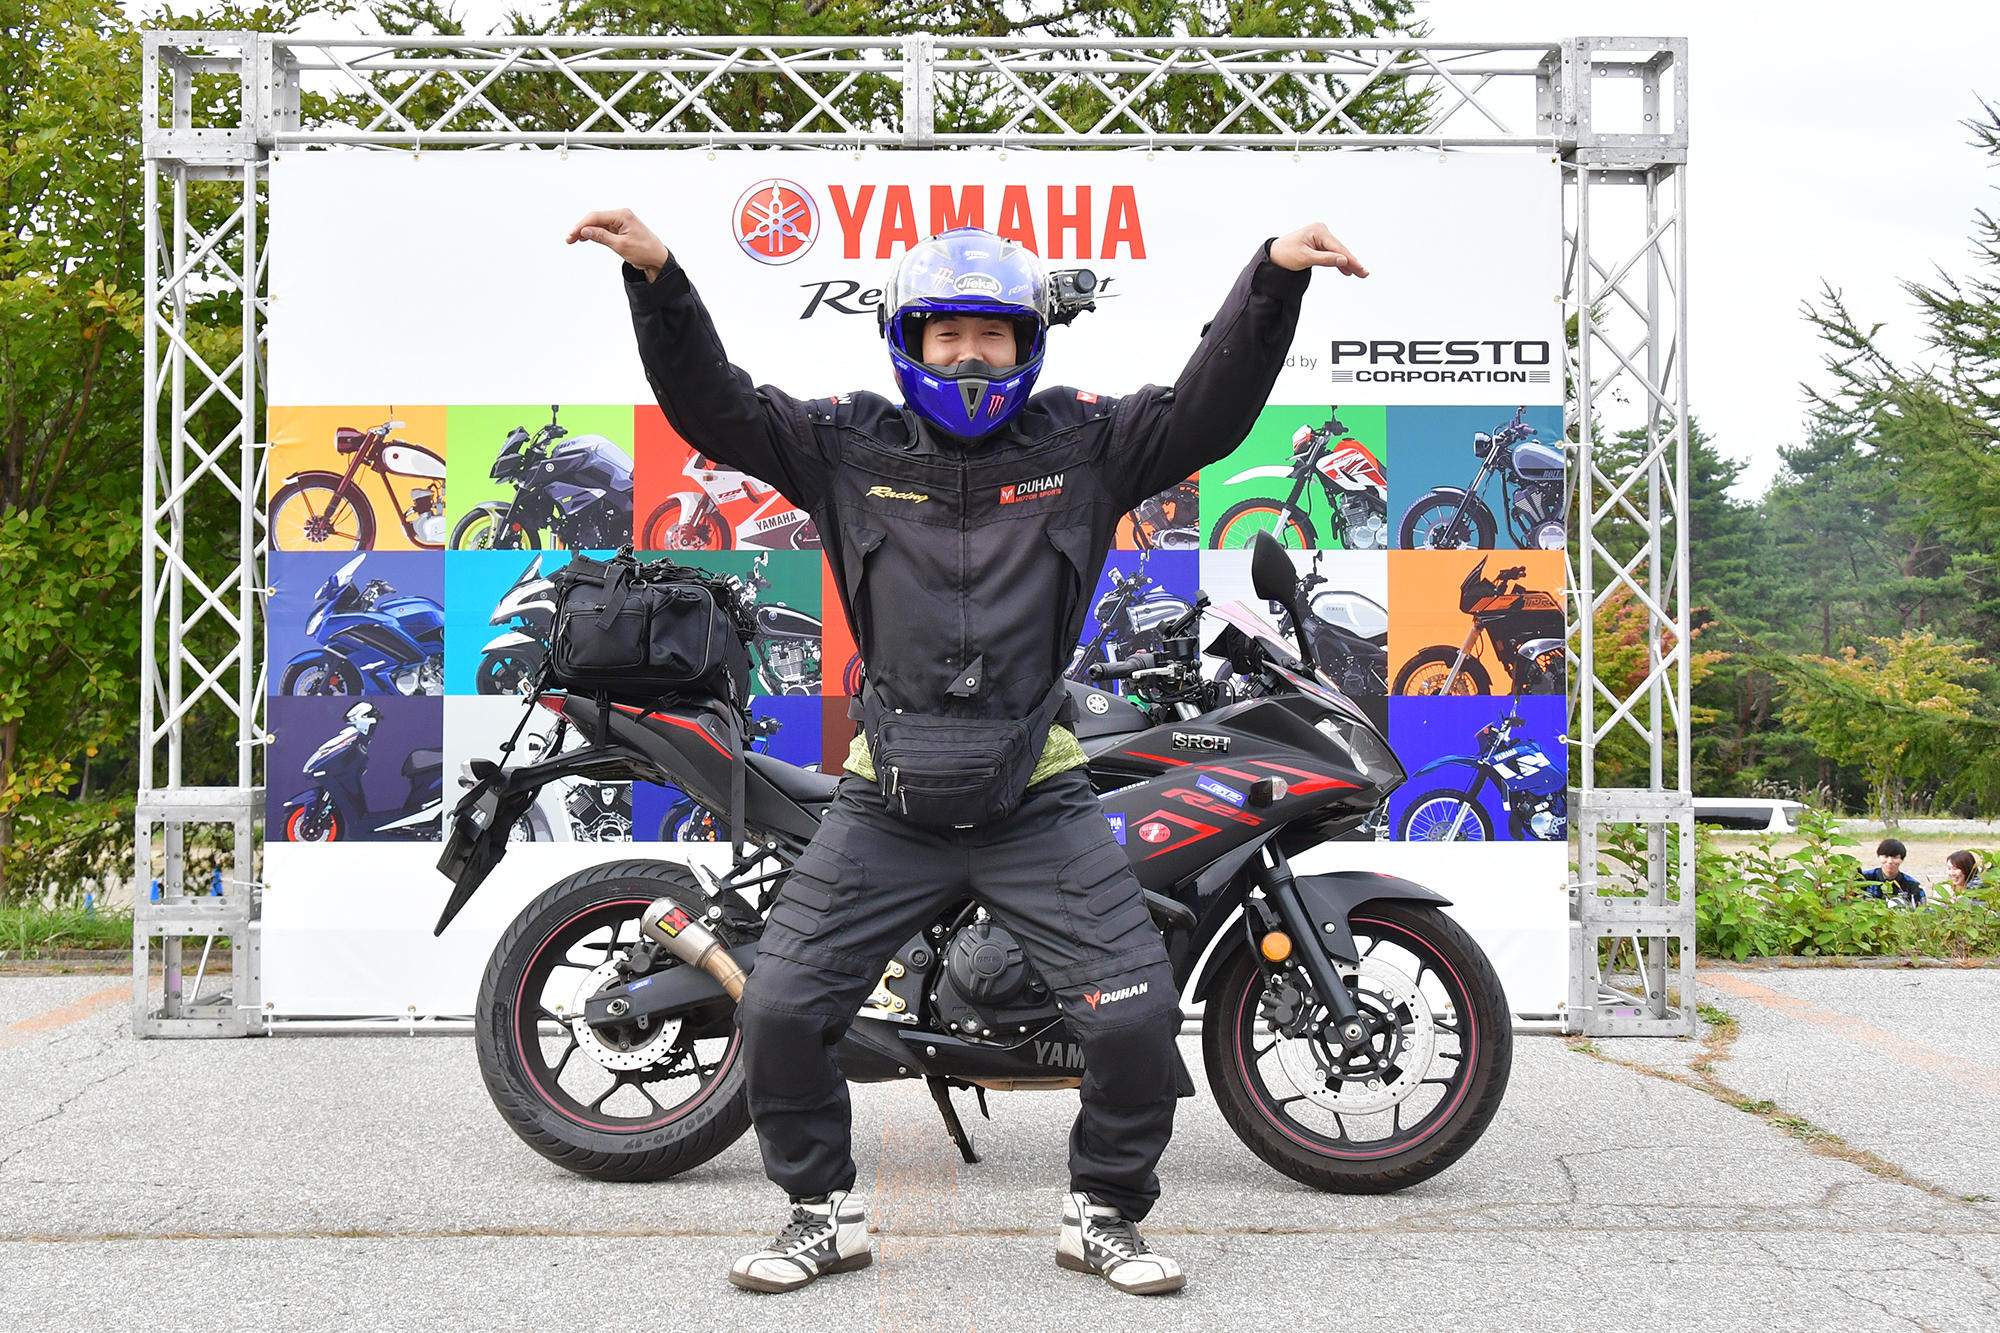 YAMAHA Motorcycle Day 2019